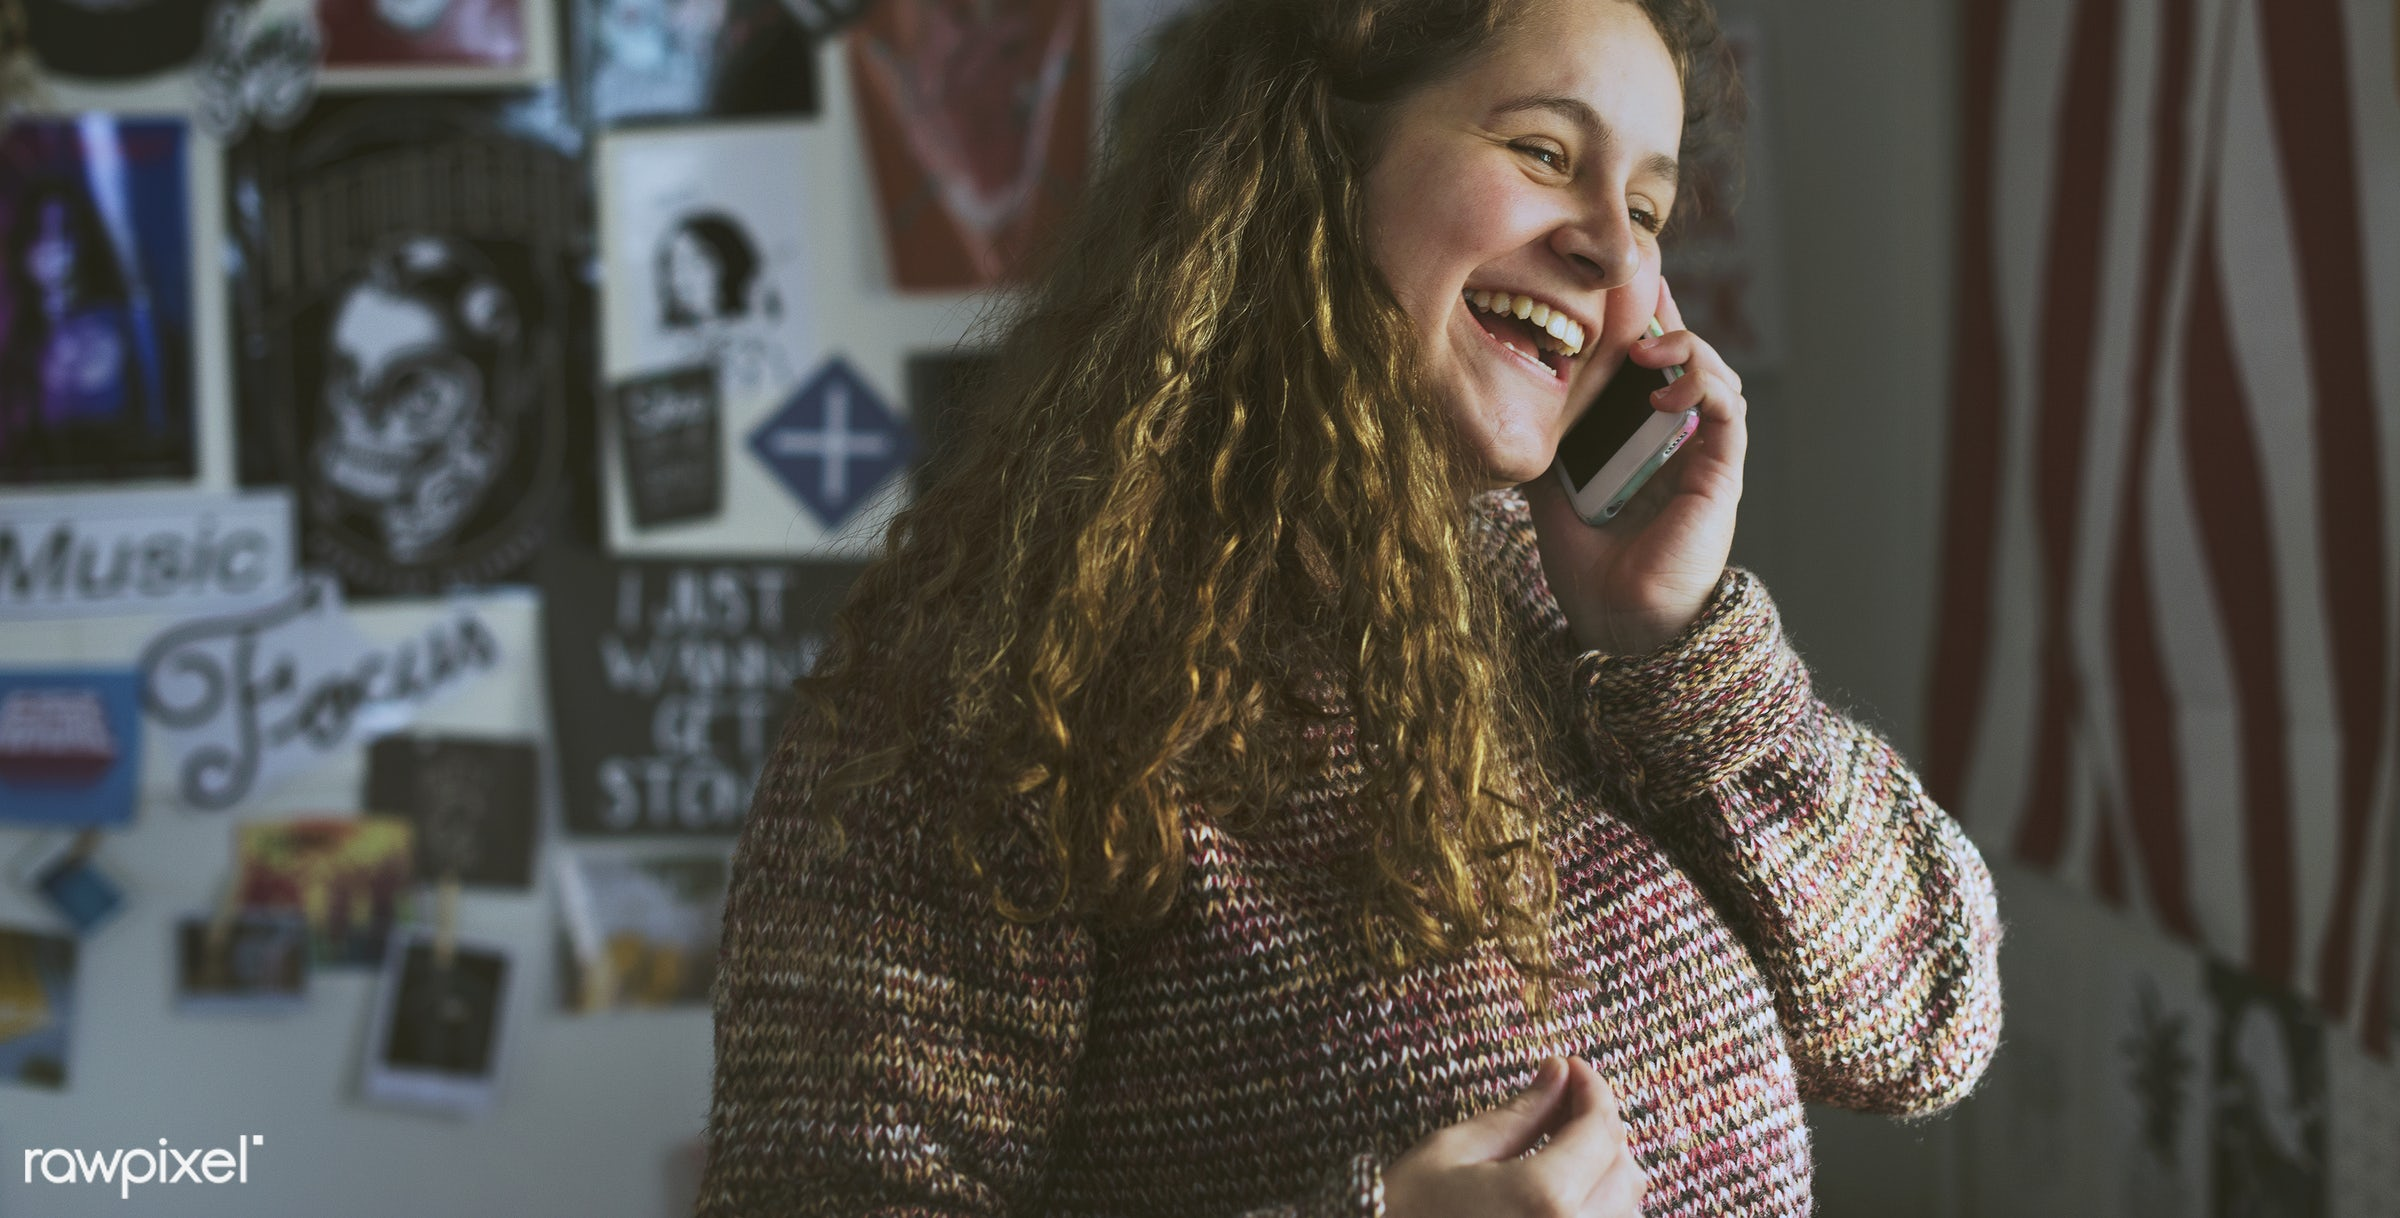 Teenage girl talking on a phone in a bedroom - teenager, smartphone, lifestyle, happy, bed, addicted, addiction, adolescence...